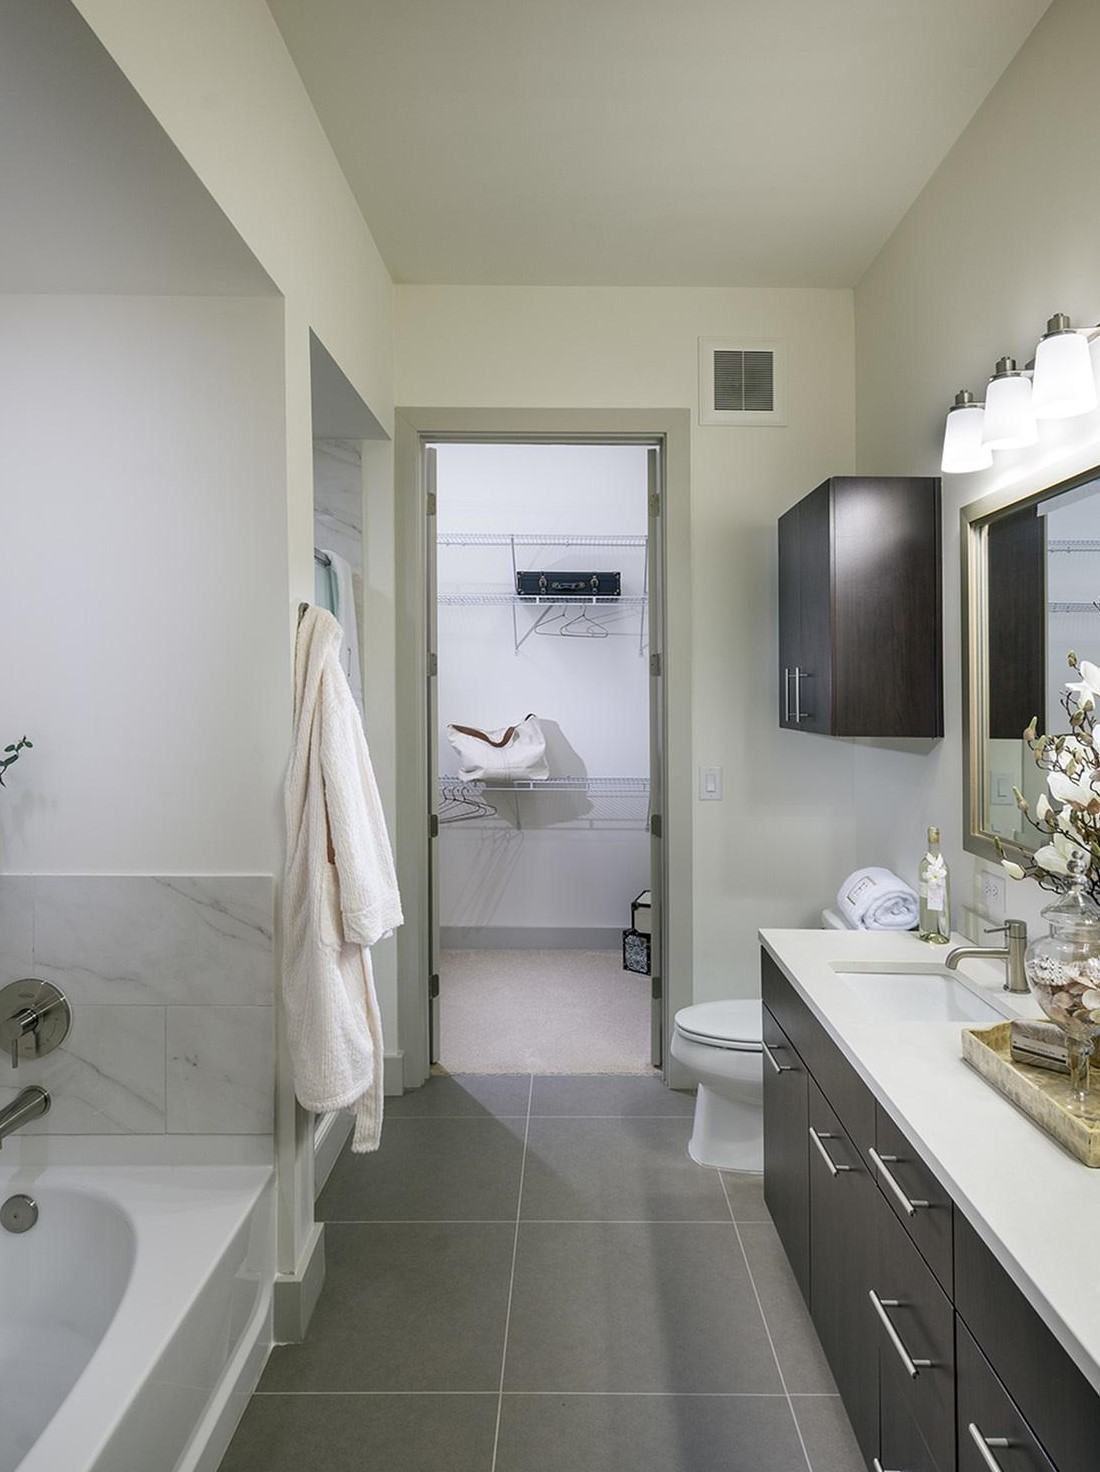 Bathroom Interior at Hanover West Peachtree Apartments in Atlanta, GA